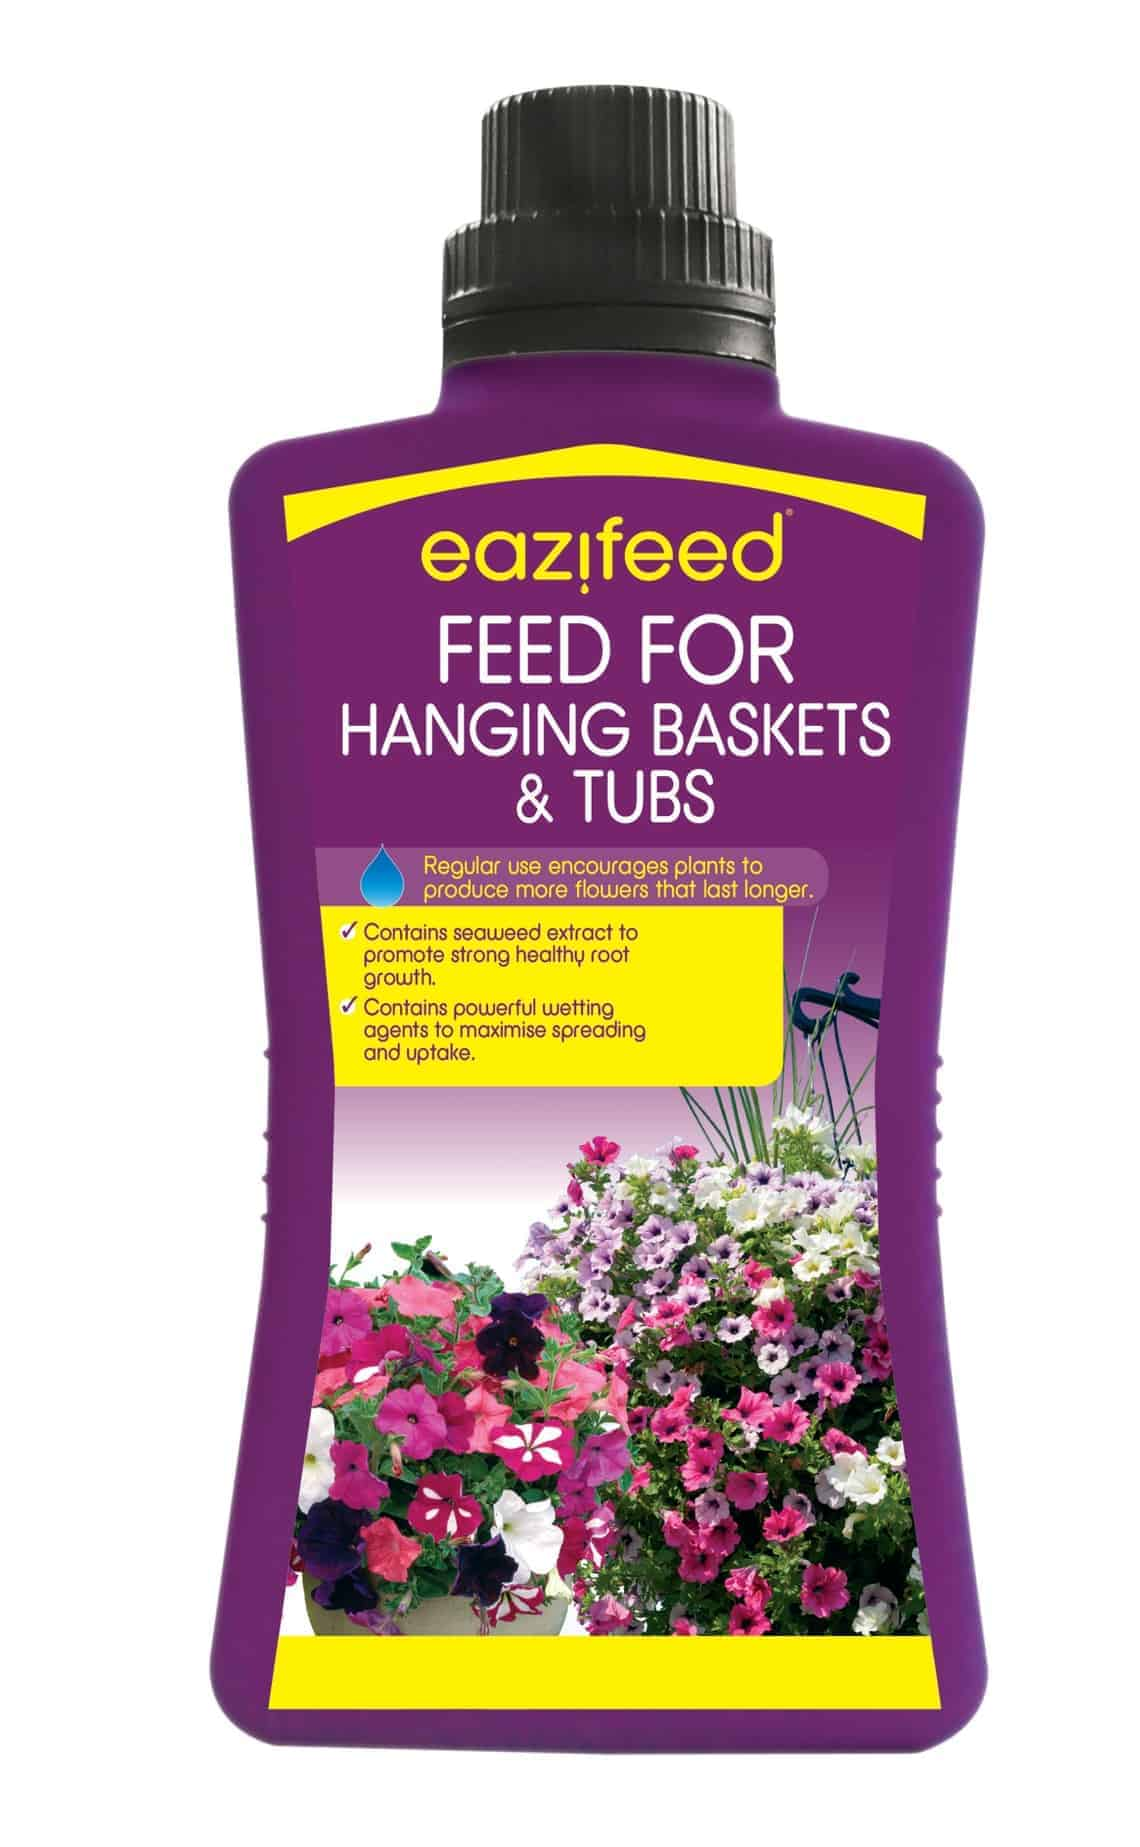 EaziFeed Hanging Baskets and Tubs Feed